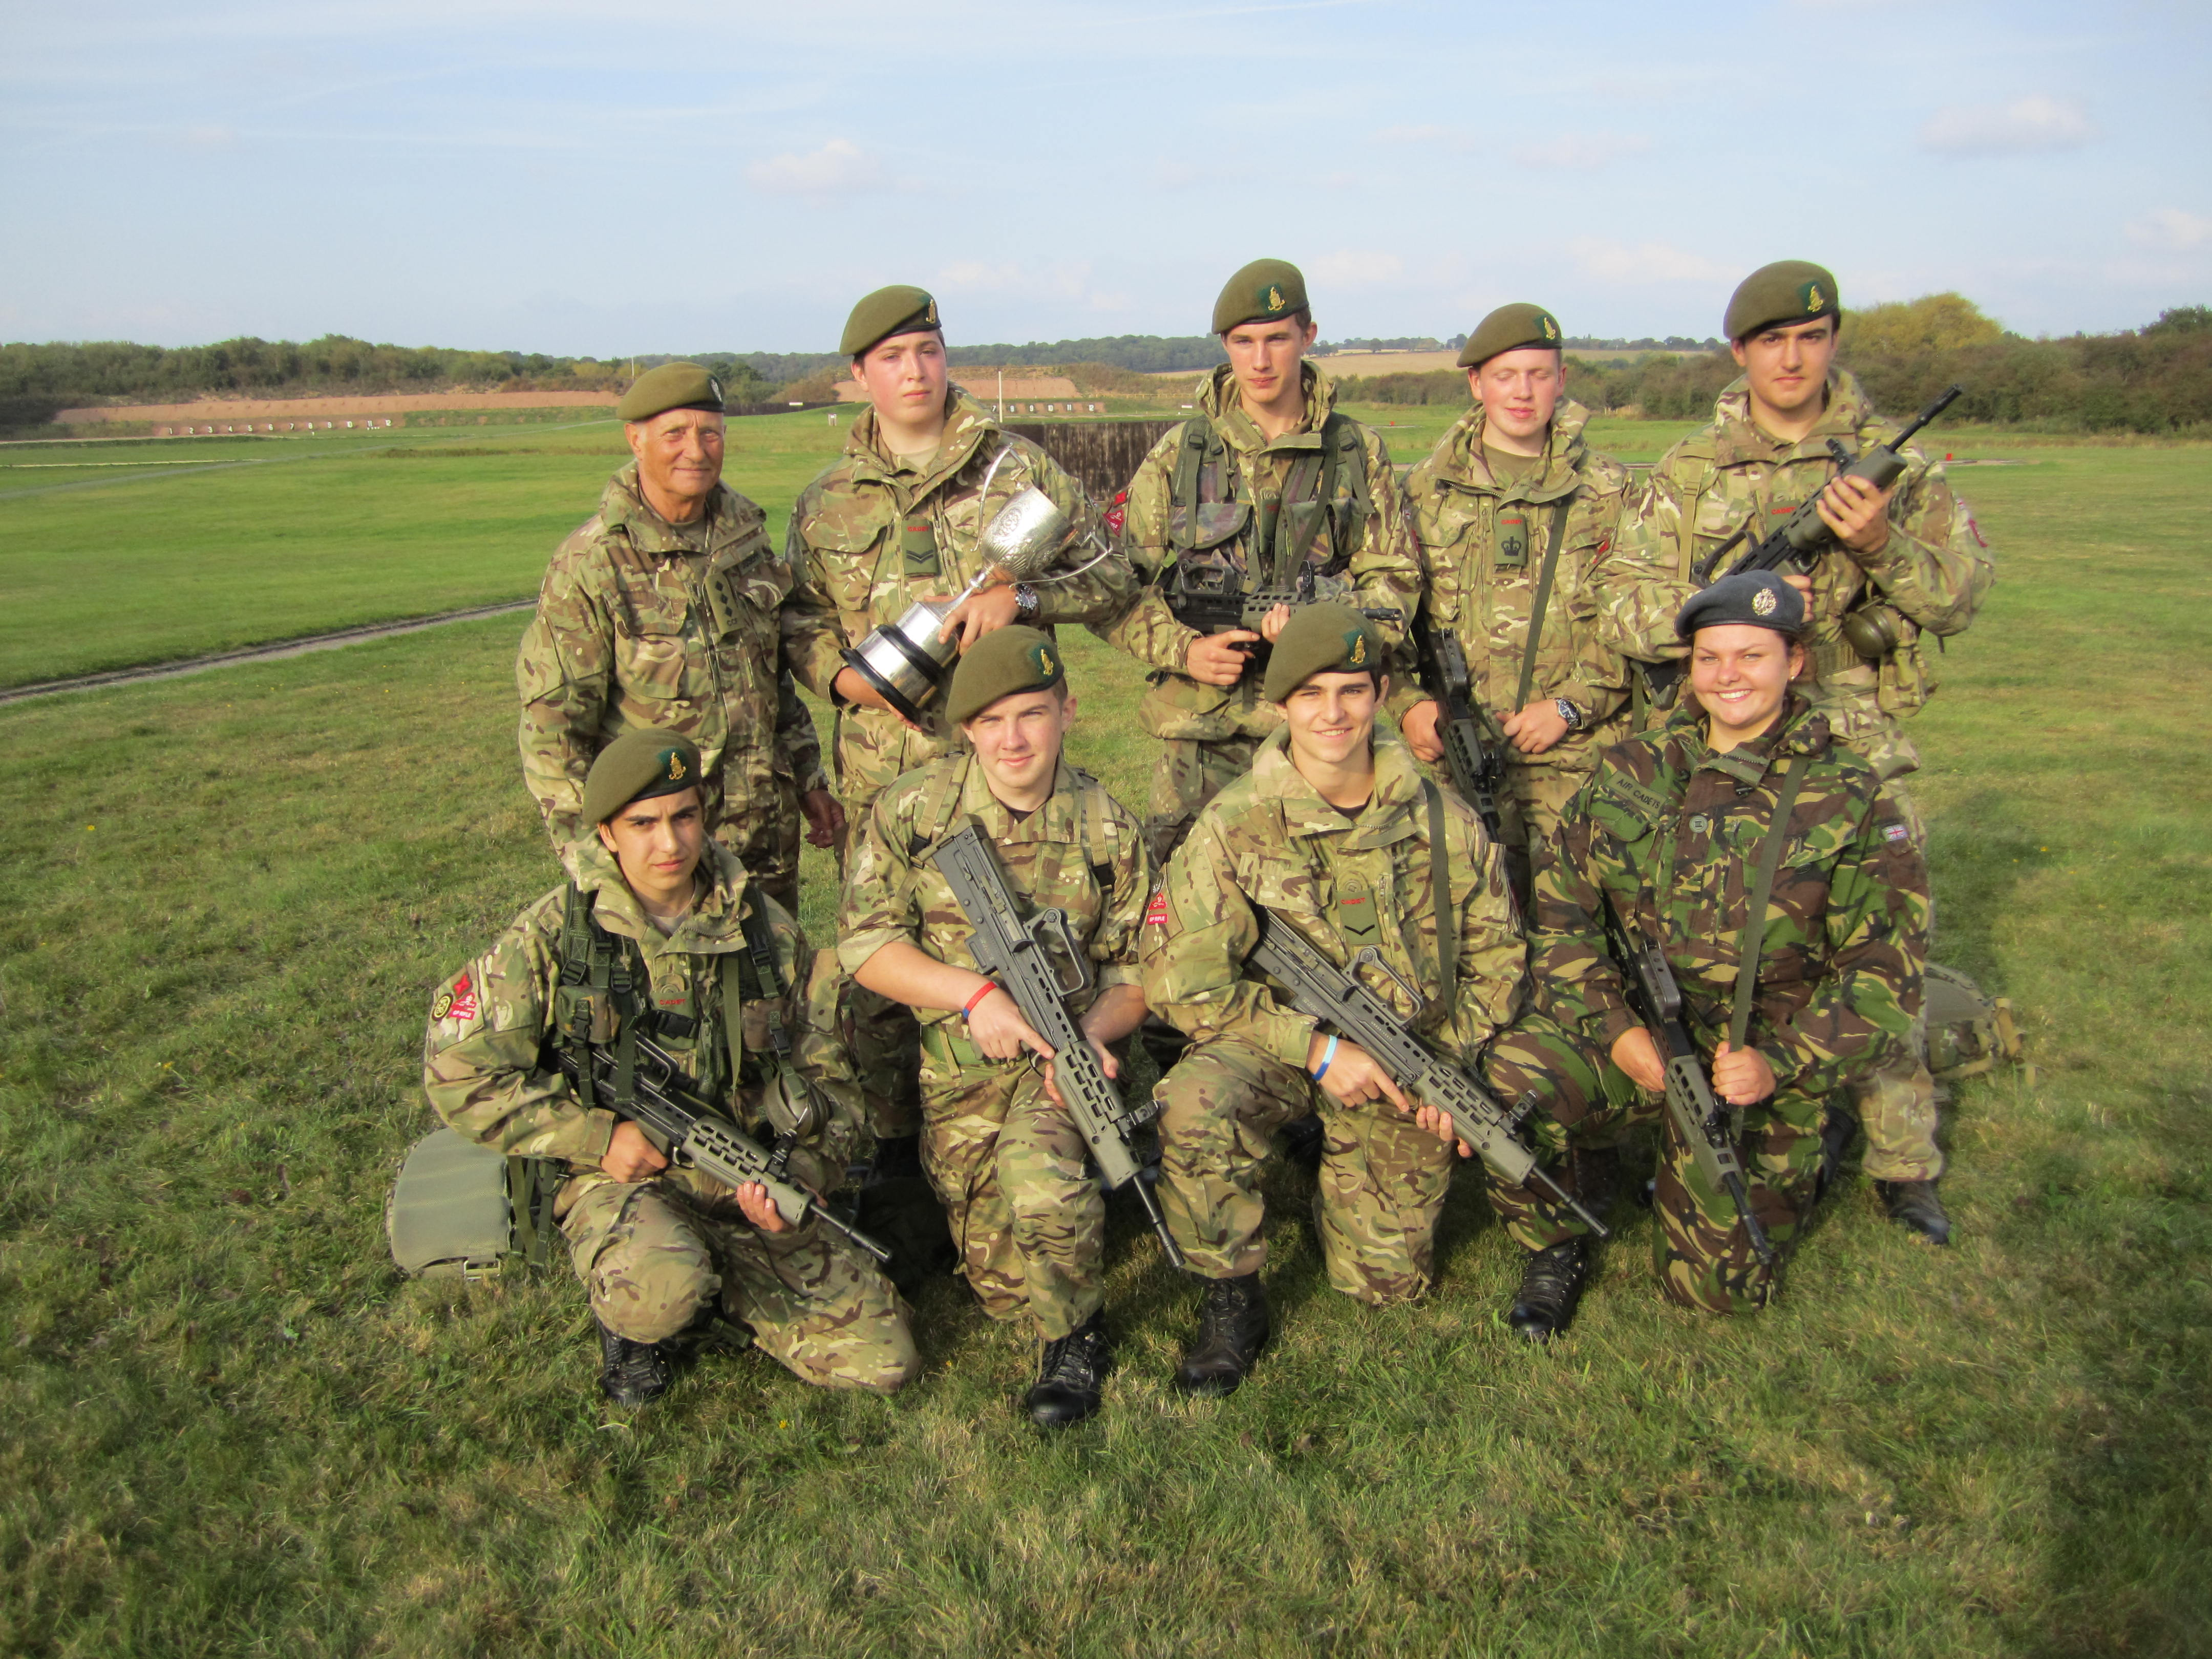 Members of the Bromsgrove School Combined Cadet Force shooting team